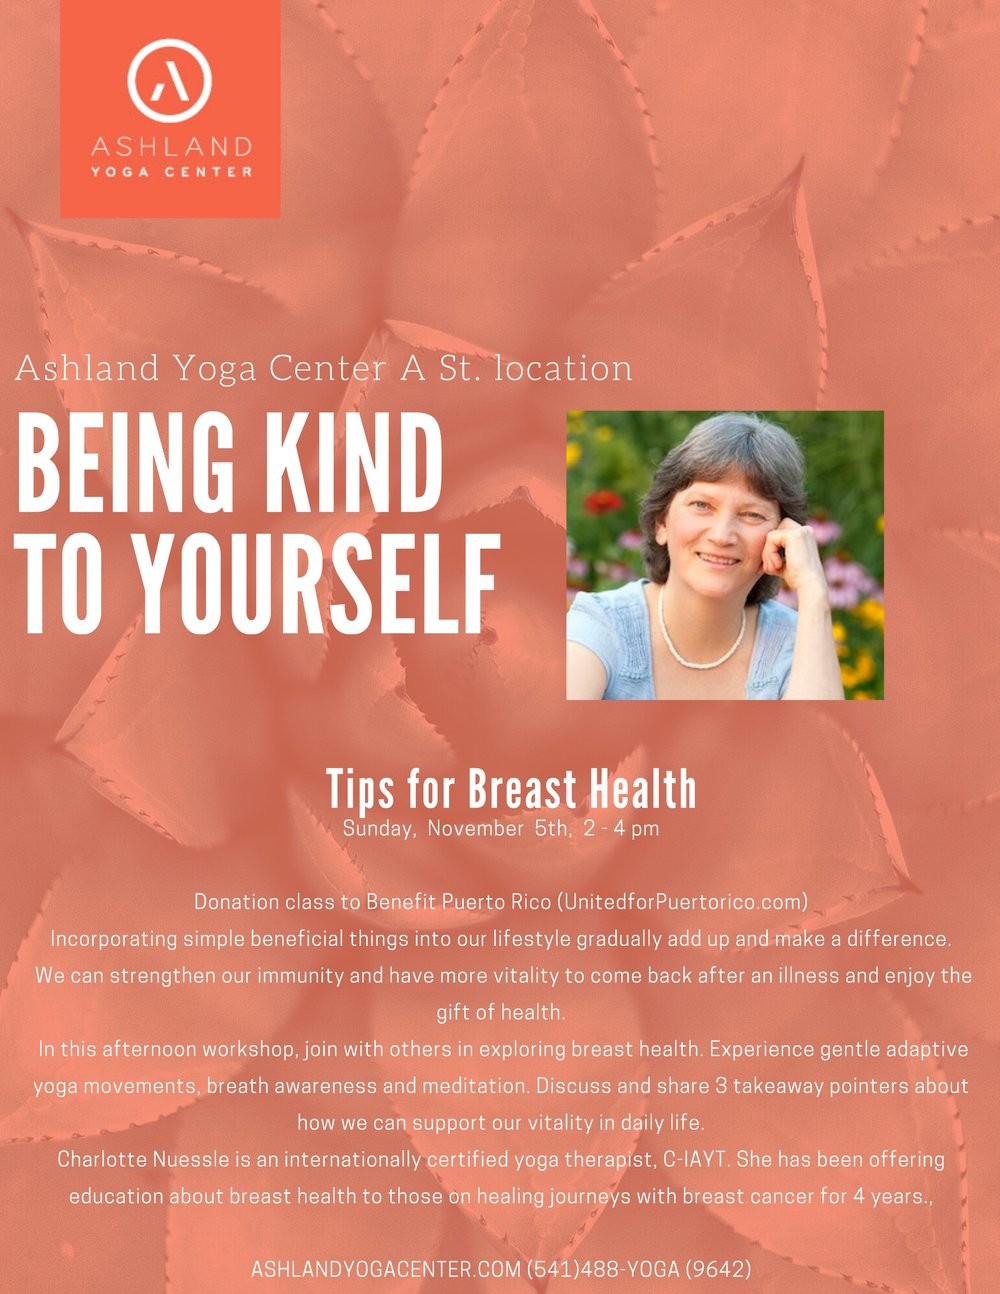 Unwind, breathe, meditate, take away support to be kinder to yourself. By donation, everyone welcome!